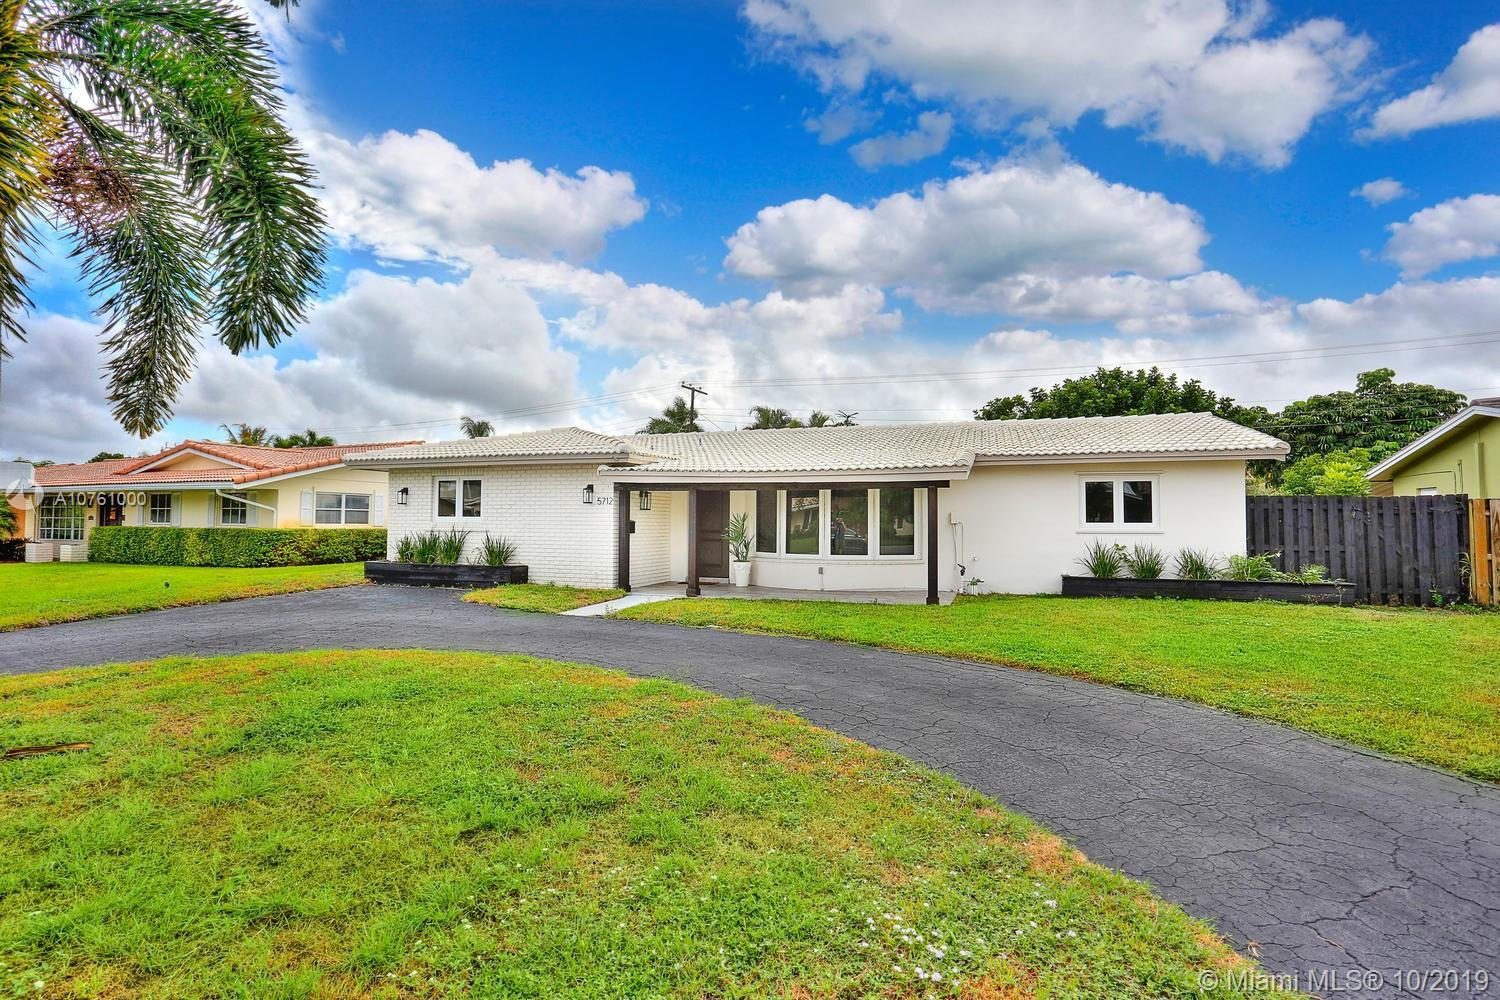 Lovely home in Coral Ridge, a quiet neighborhood  just minutes from Fort Lauderdale's  world-famous